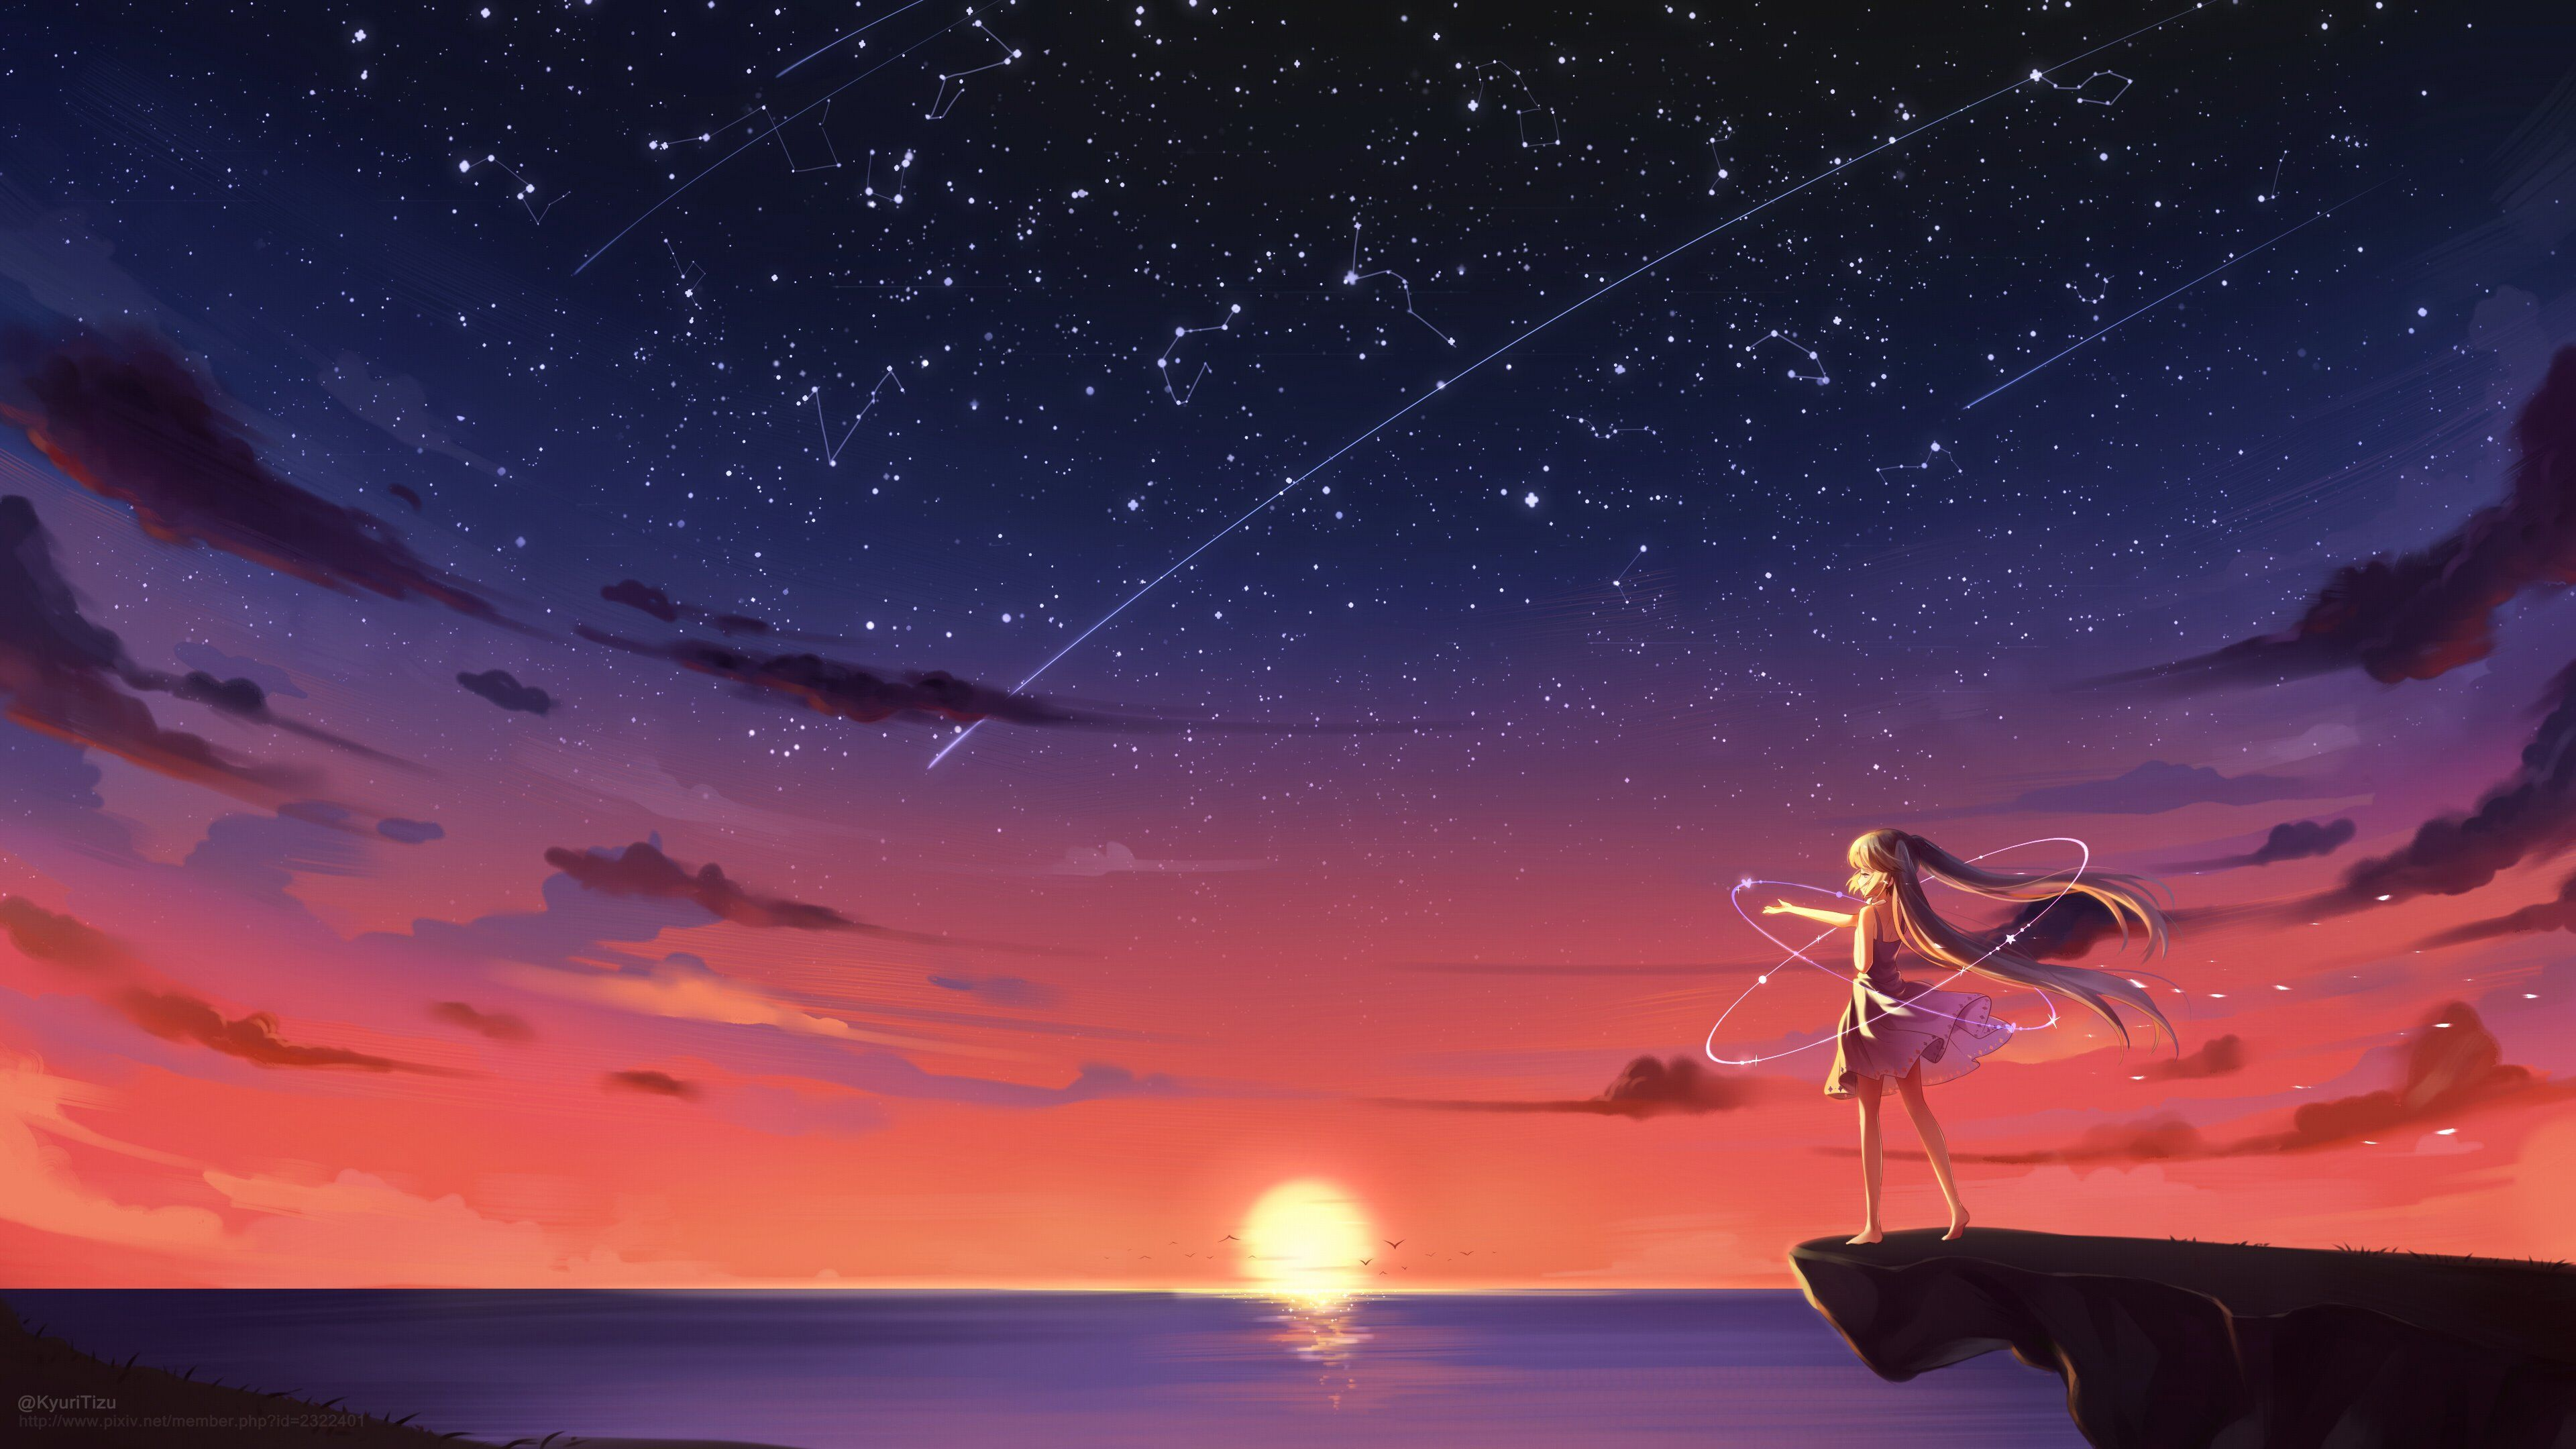 Anime Sunset Wallpapers Top Free Anime Sunset Backgrounds